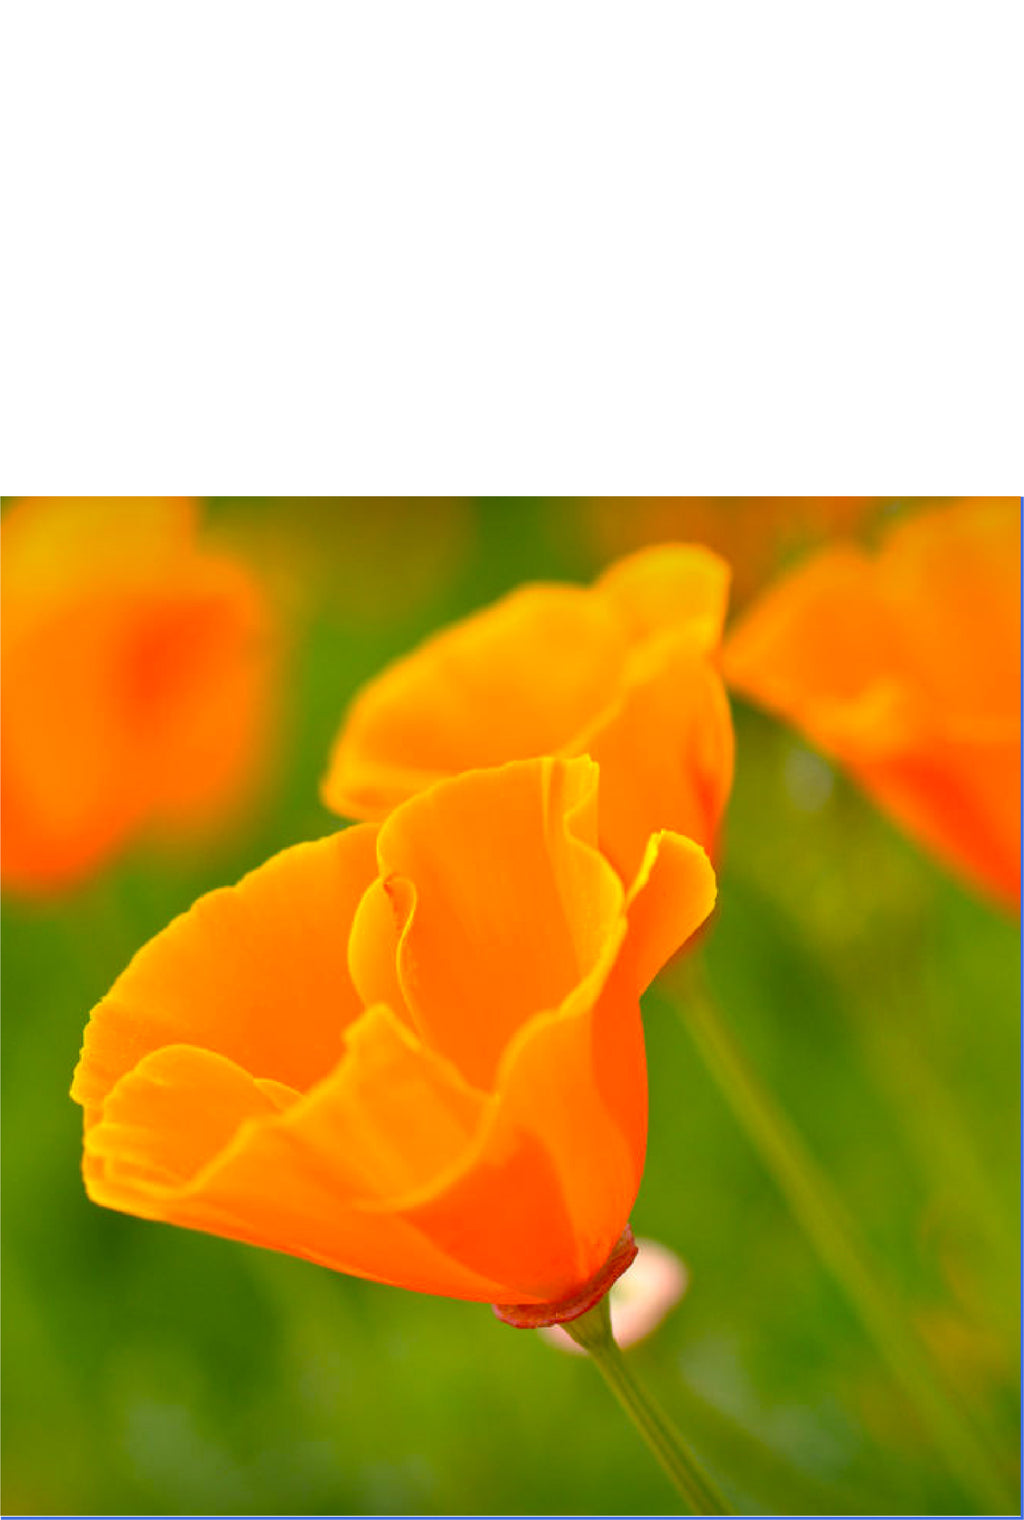 California Poppy - Over 20,000 Seeds